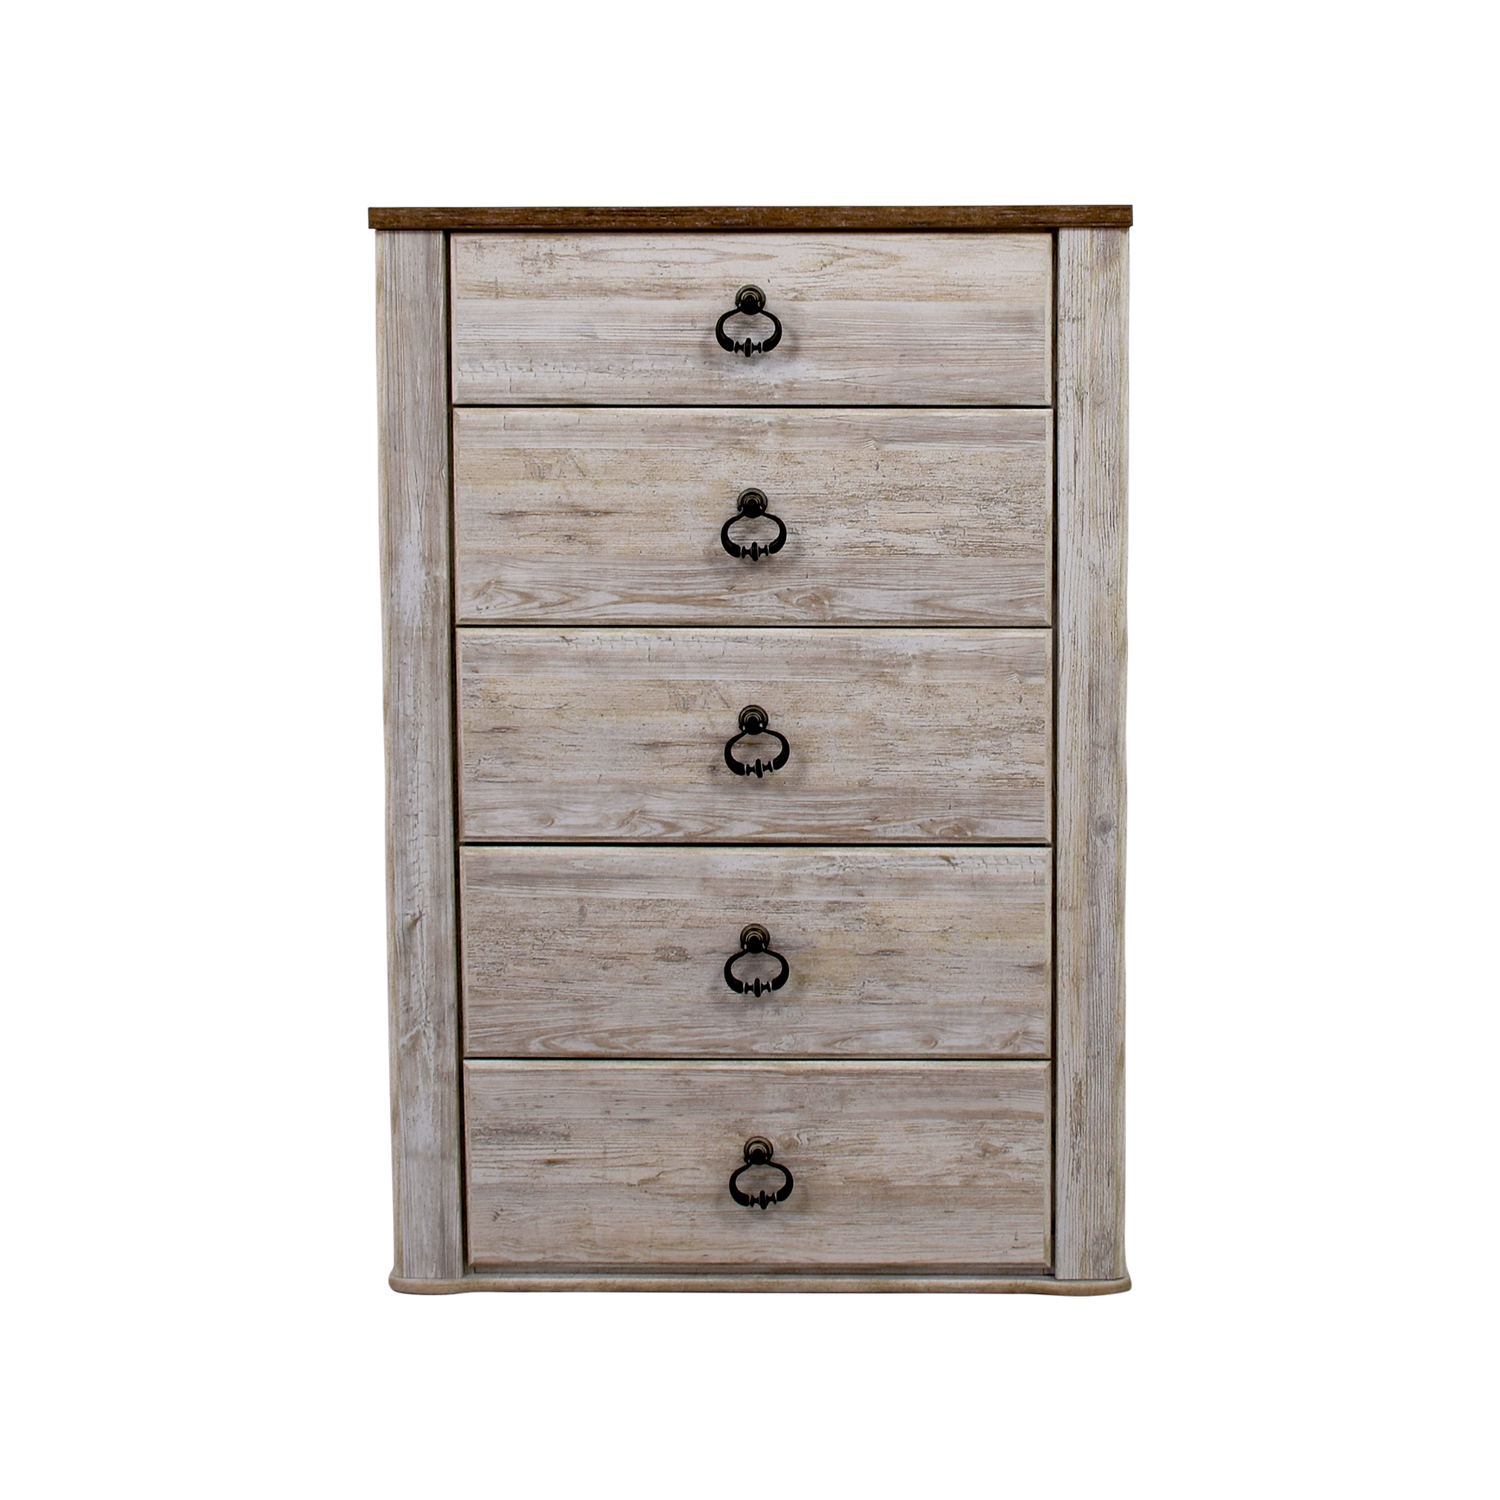 Ashley Furniture Ashley Furniture Willowtown Five-Drawer Chest dimensions